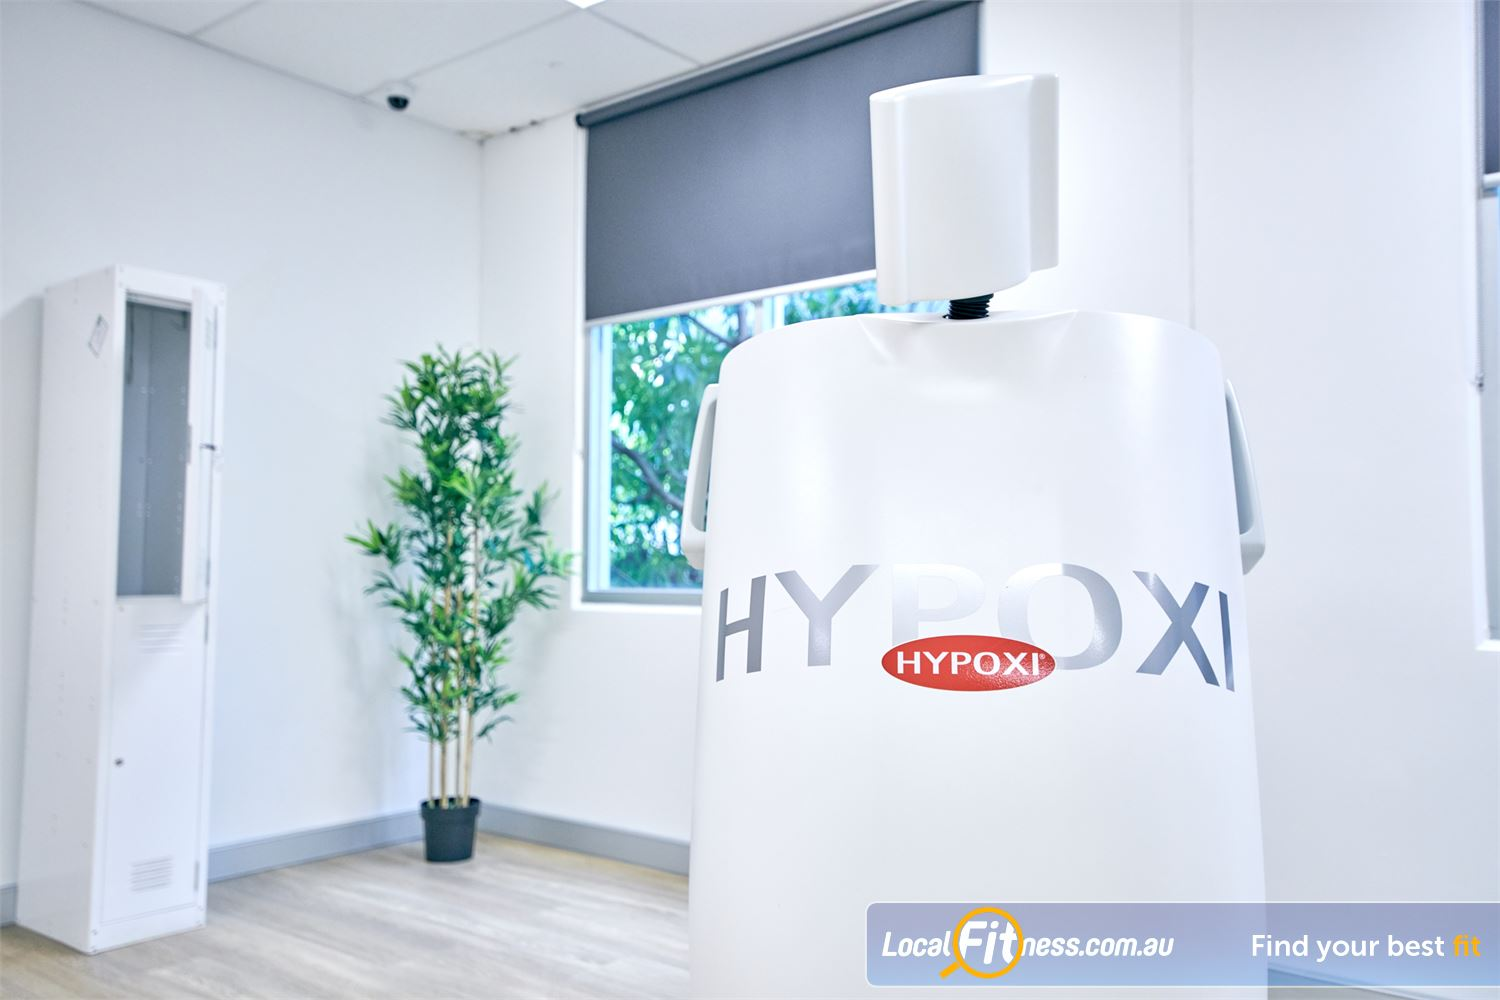 HYPOXI Weight Loss Near Greenwood Our advanced HYPOXI machines will monitor your heart rate and skin temperature during treatment.